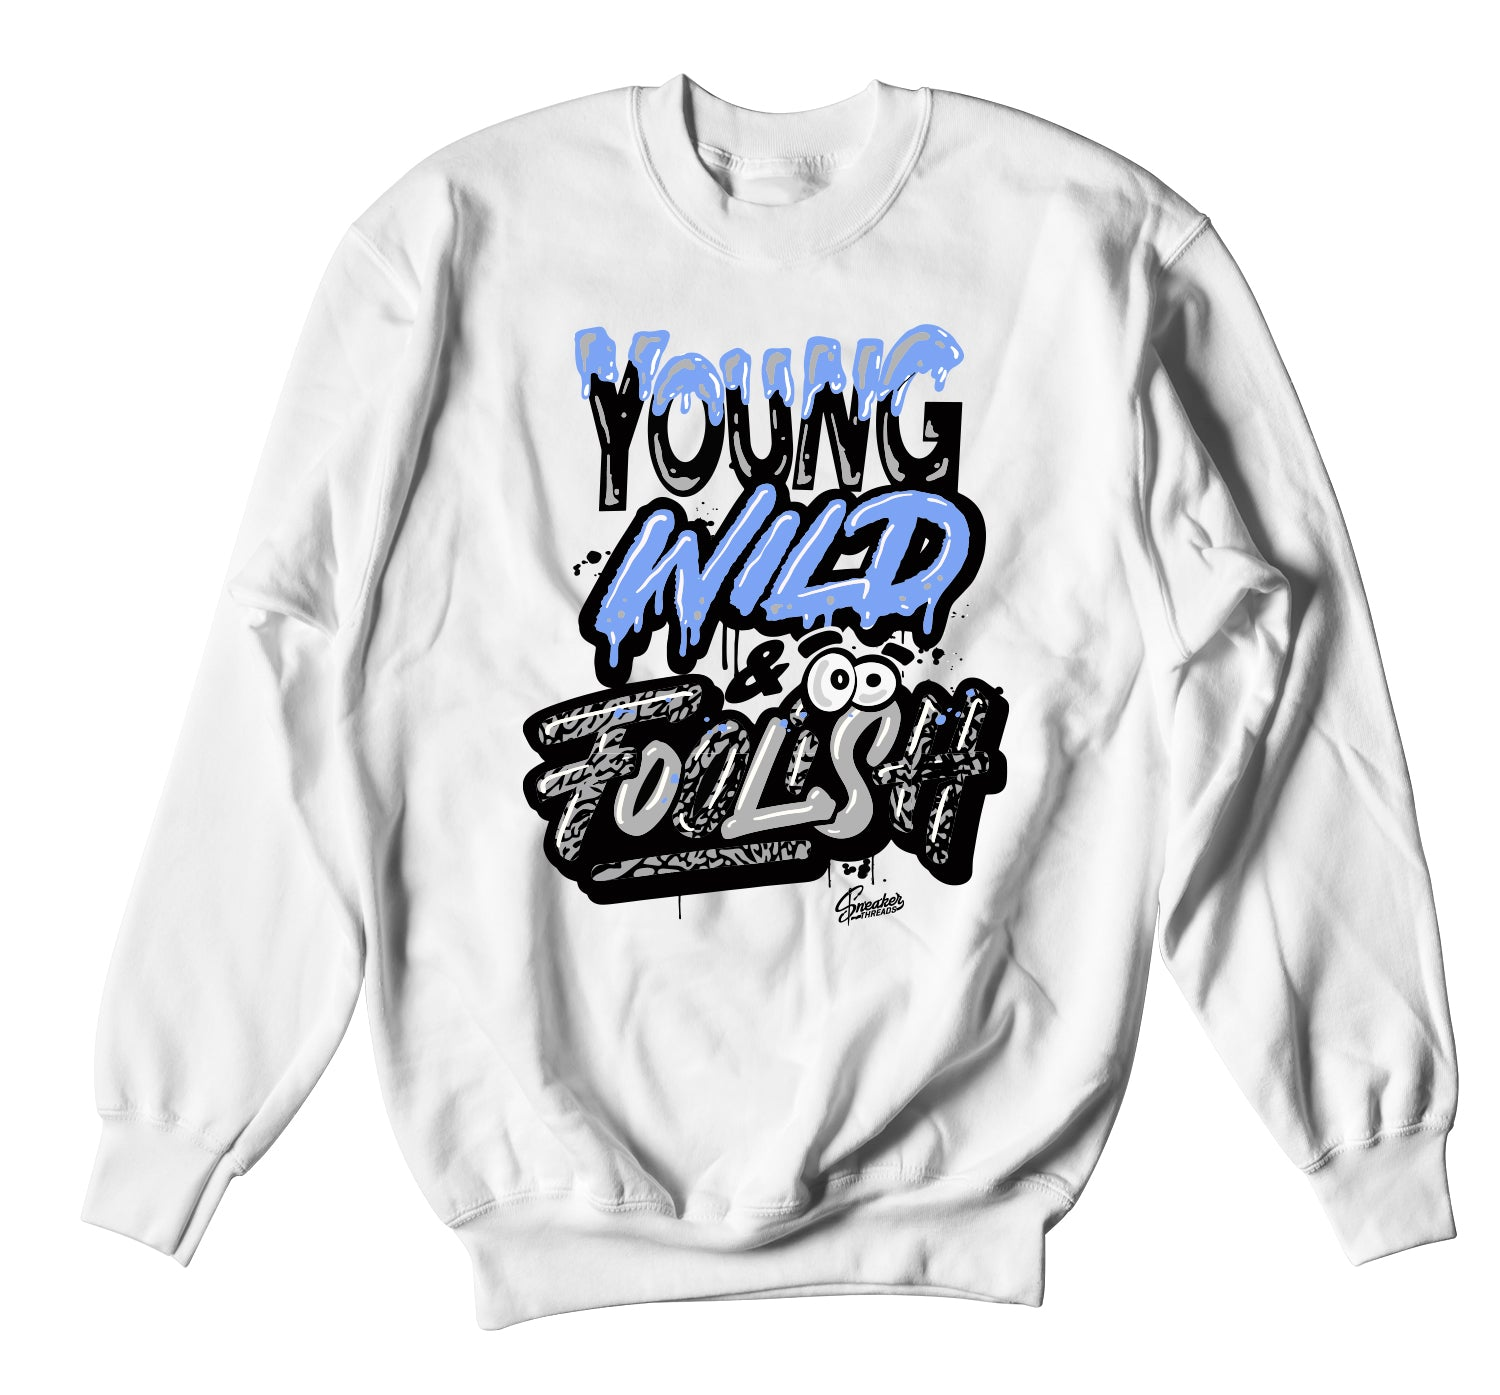 Jordan 3 UNC Sweater - Young Wild - White